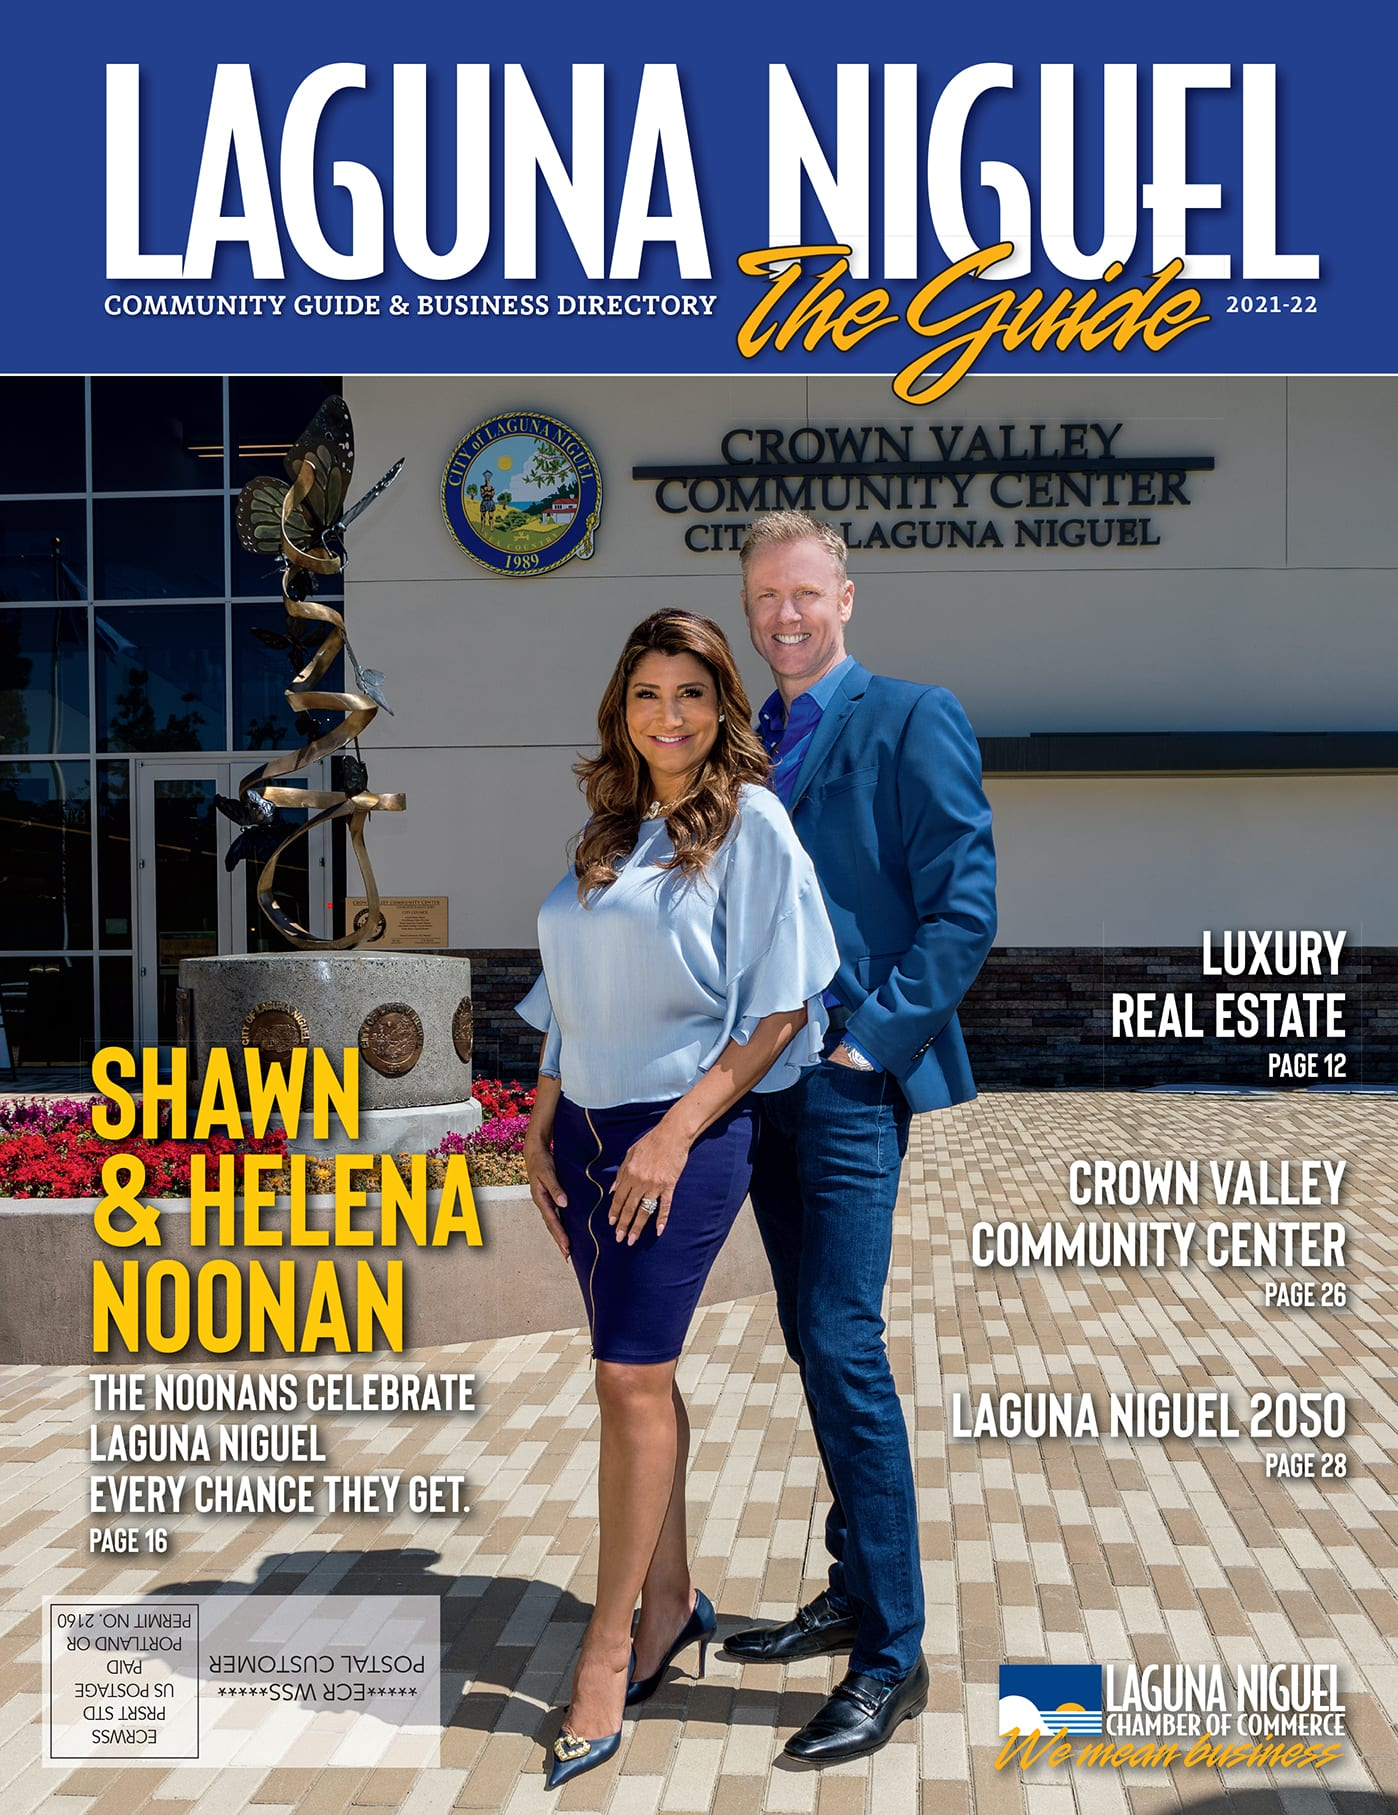 Laguna-Niguel-Chamber-of-Commerce-Business-Directory-2021